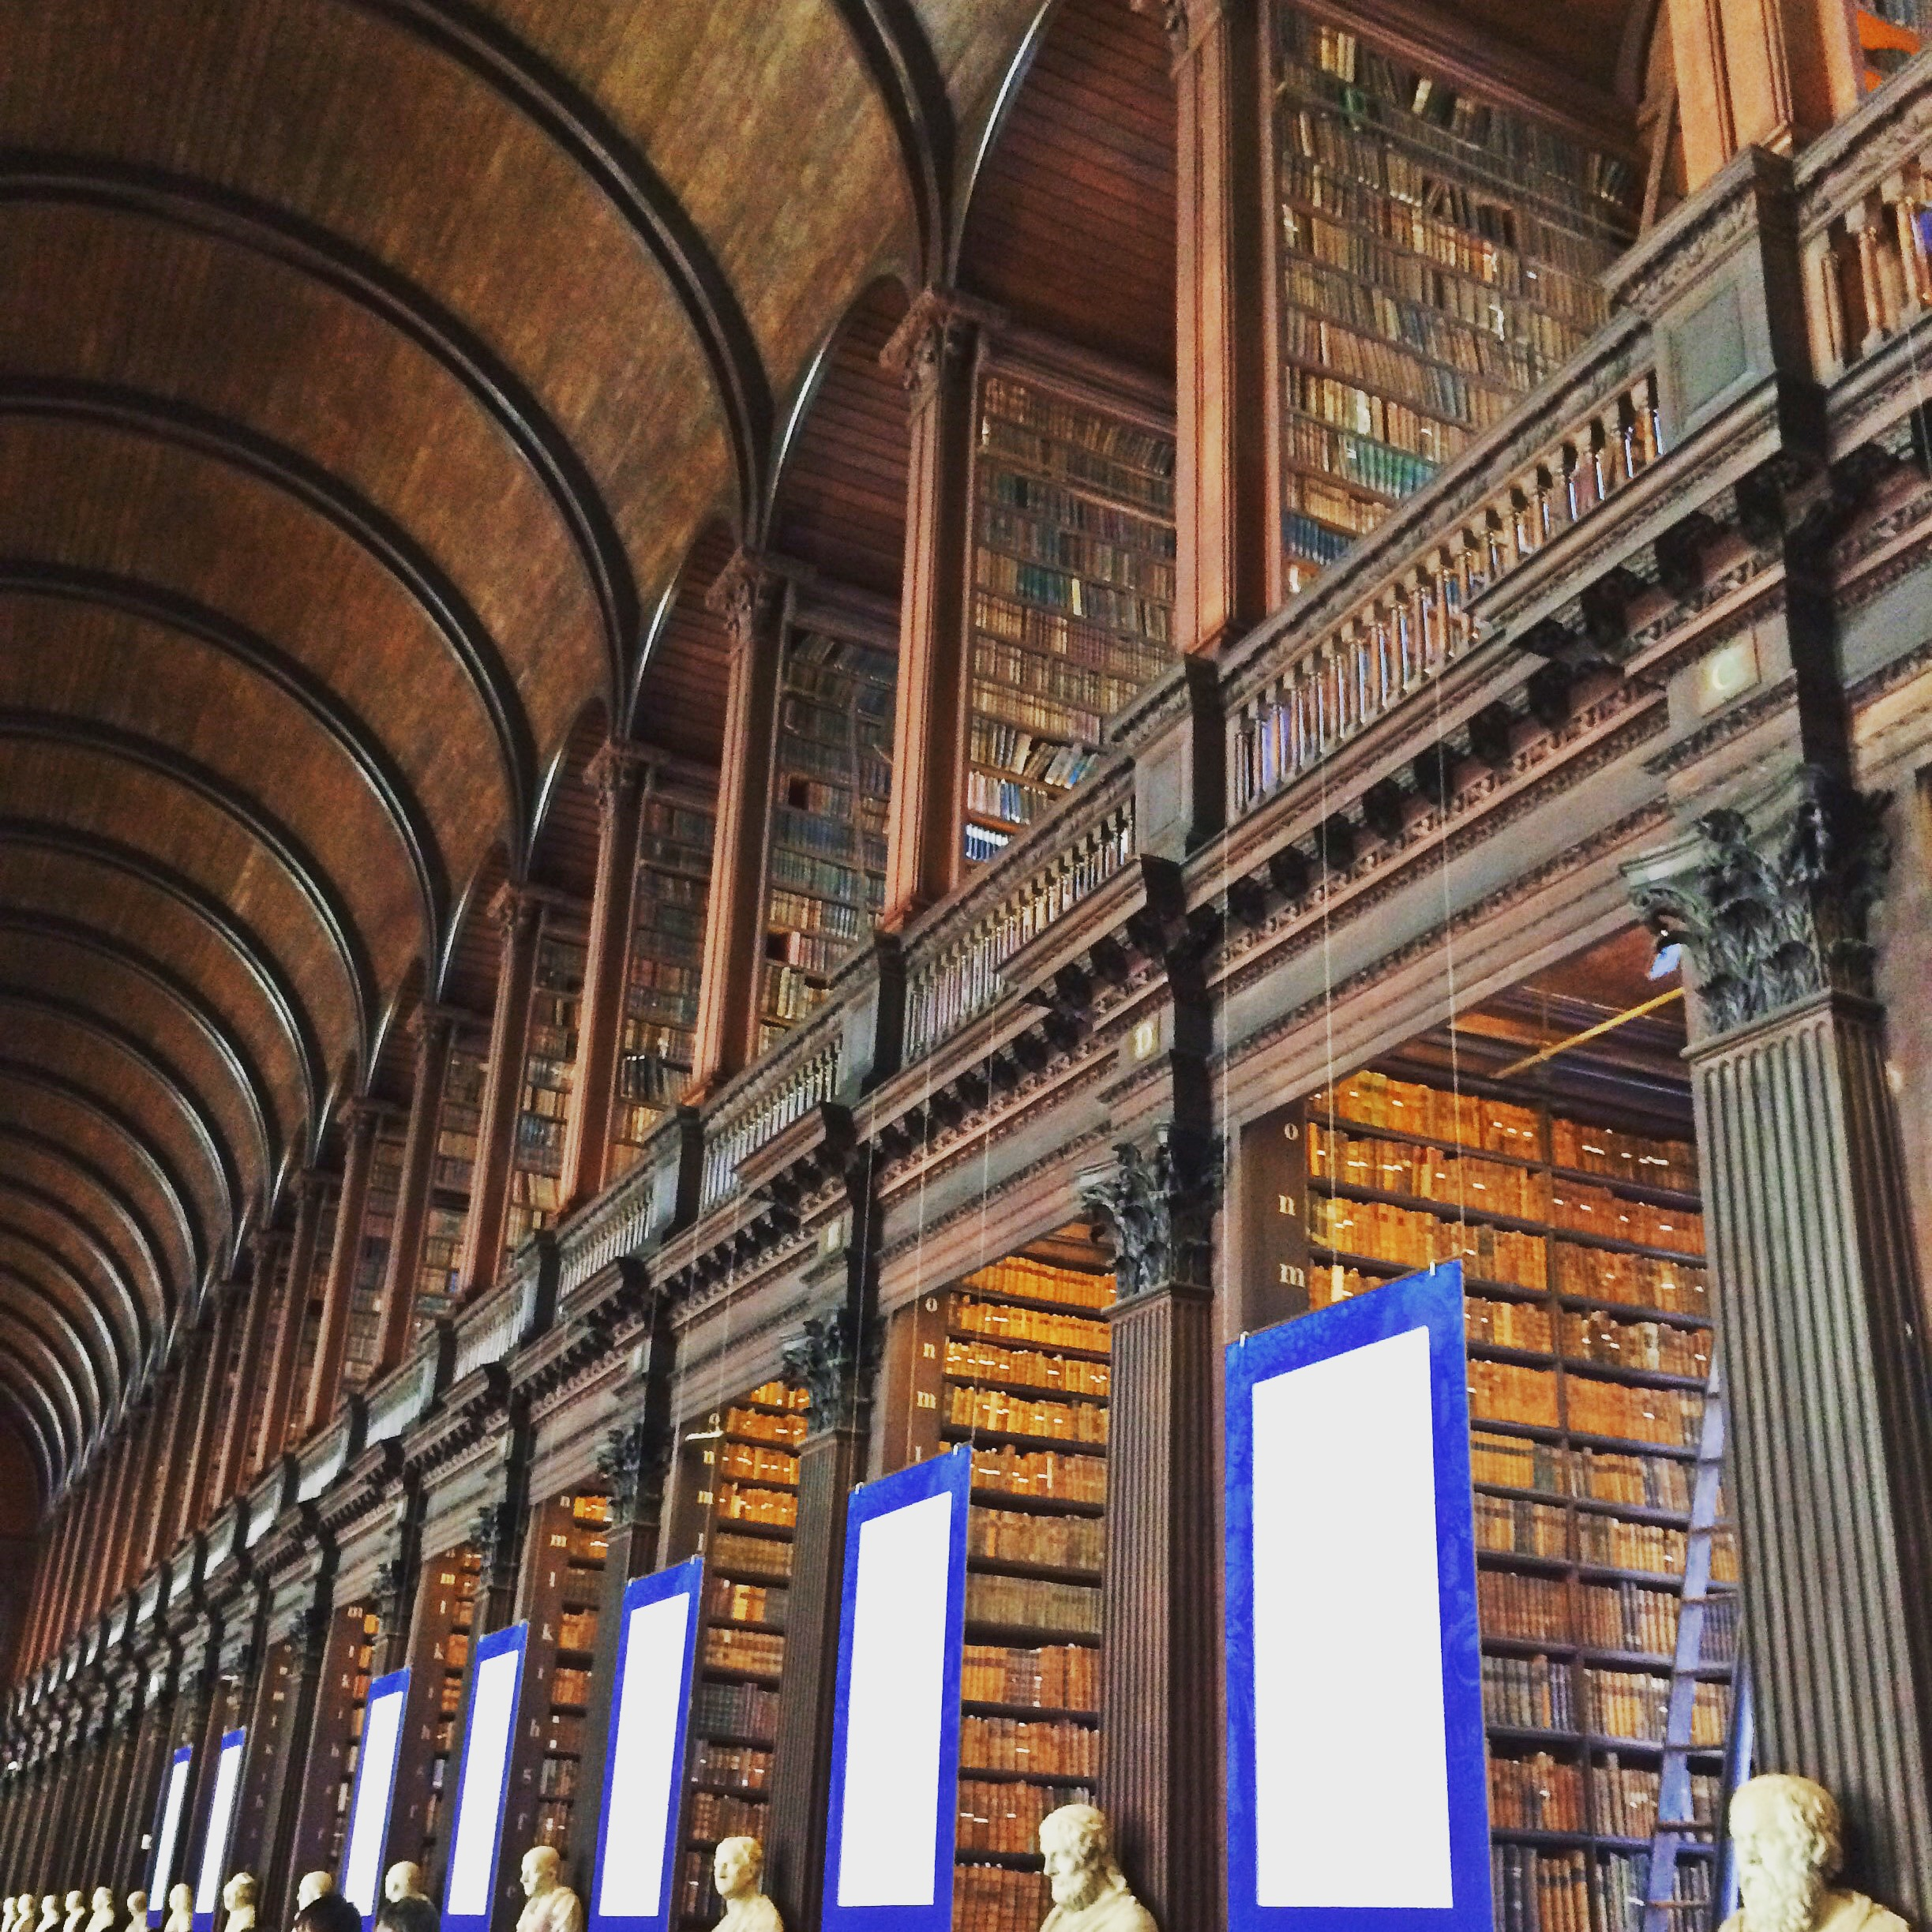 The Trinity College Library in Dublin, Ireland (March 2015).